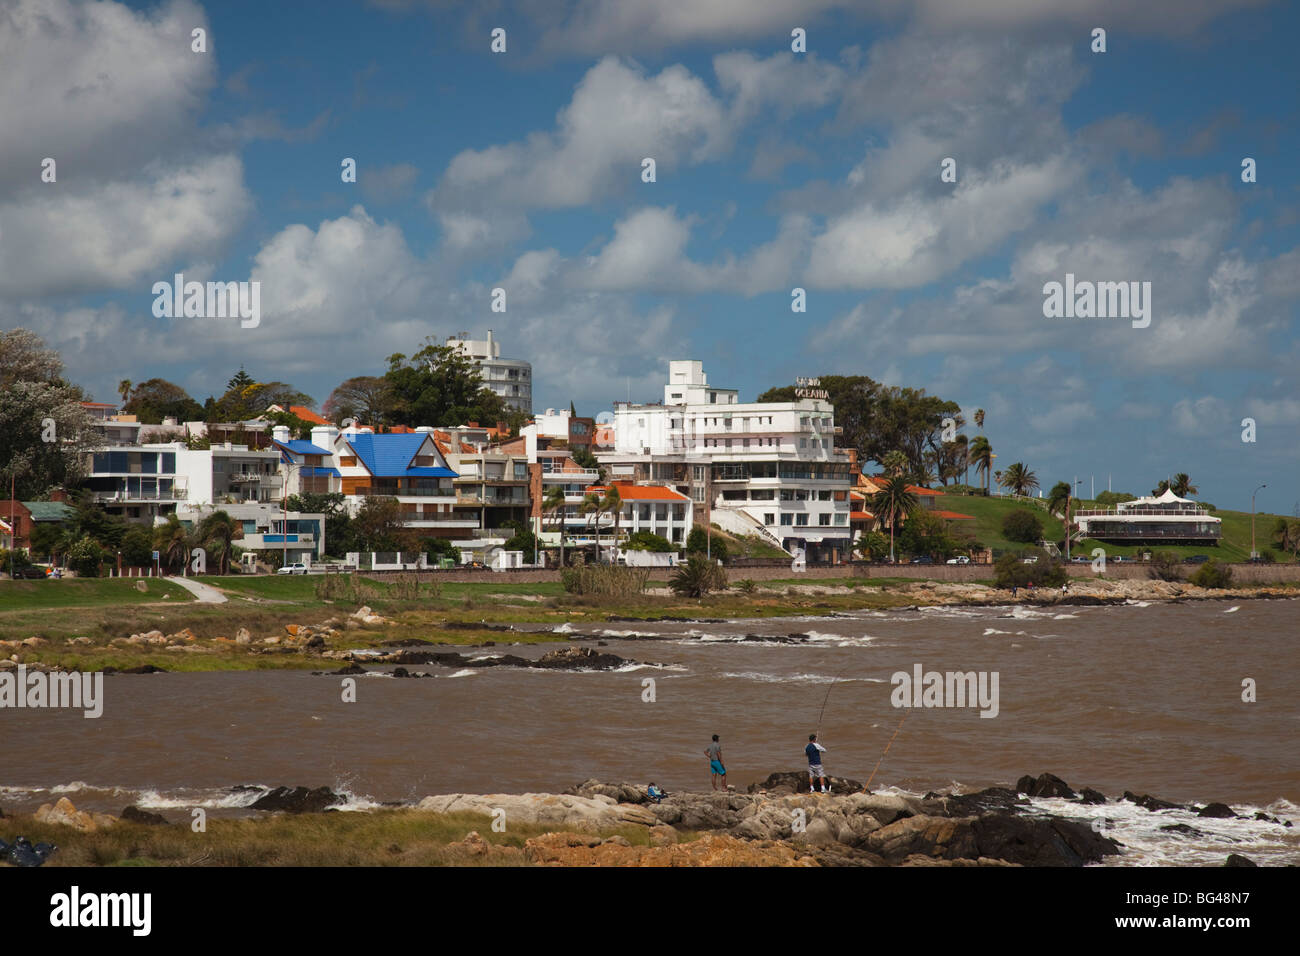 Uruguay Montevideo Playa Los Ingleses Beach Stock Photo Alamy